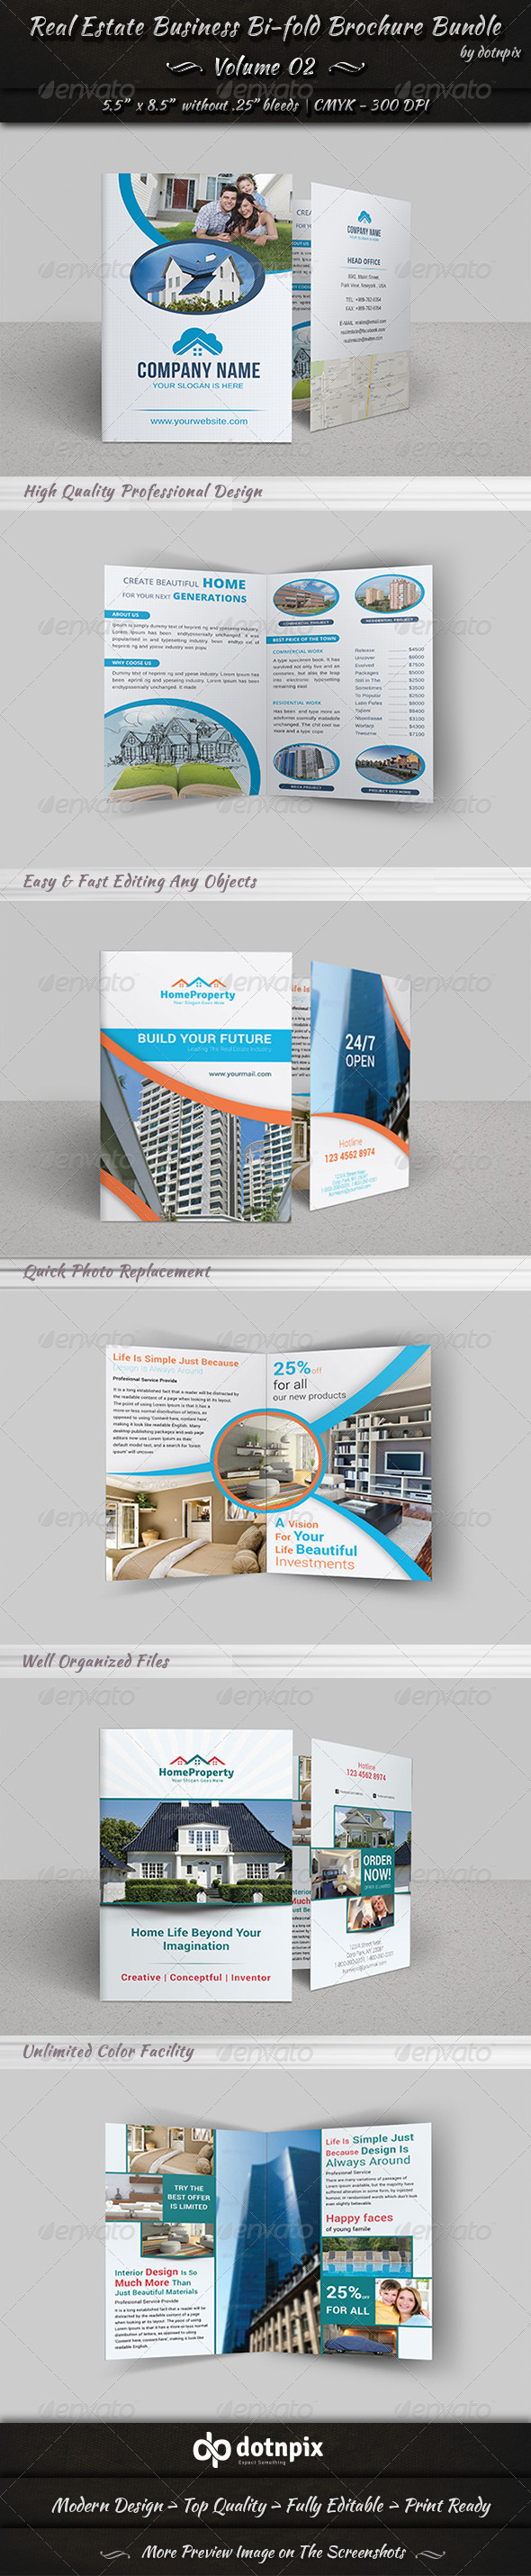 GraphicRiver Real Estate Bi-fold Brochure Bundle Volume 2 7244514